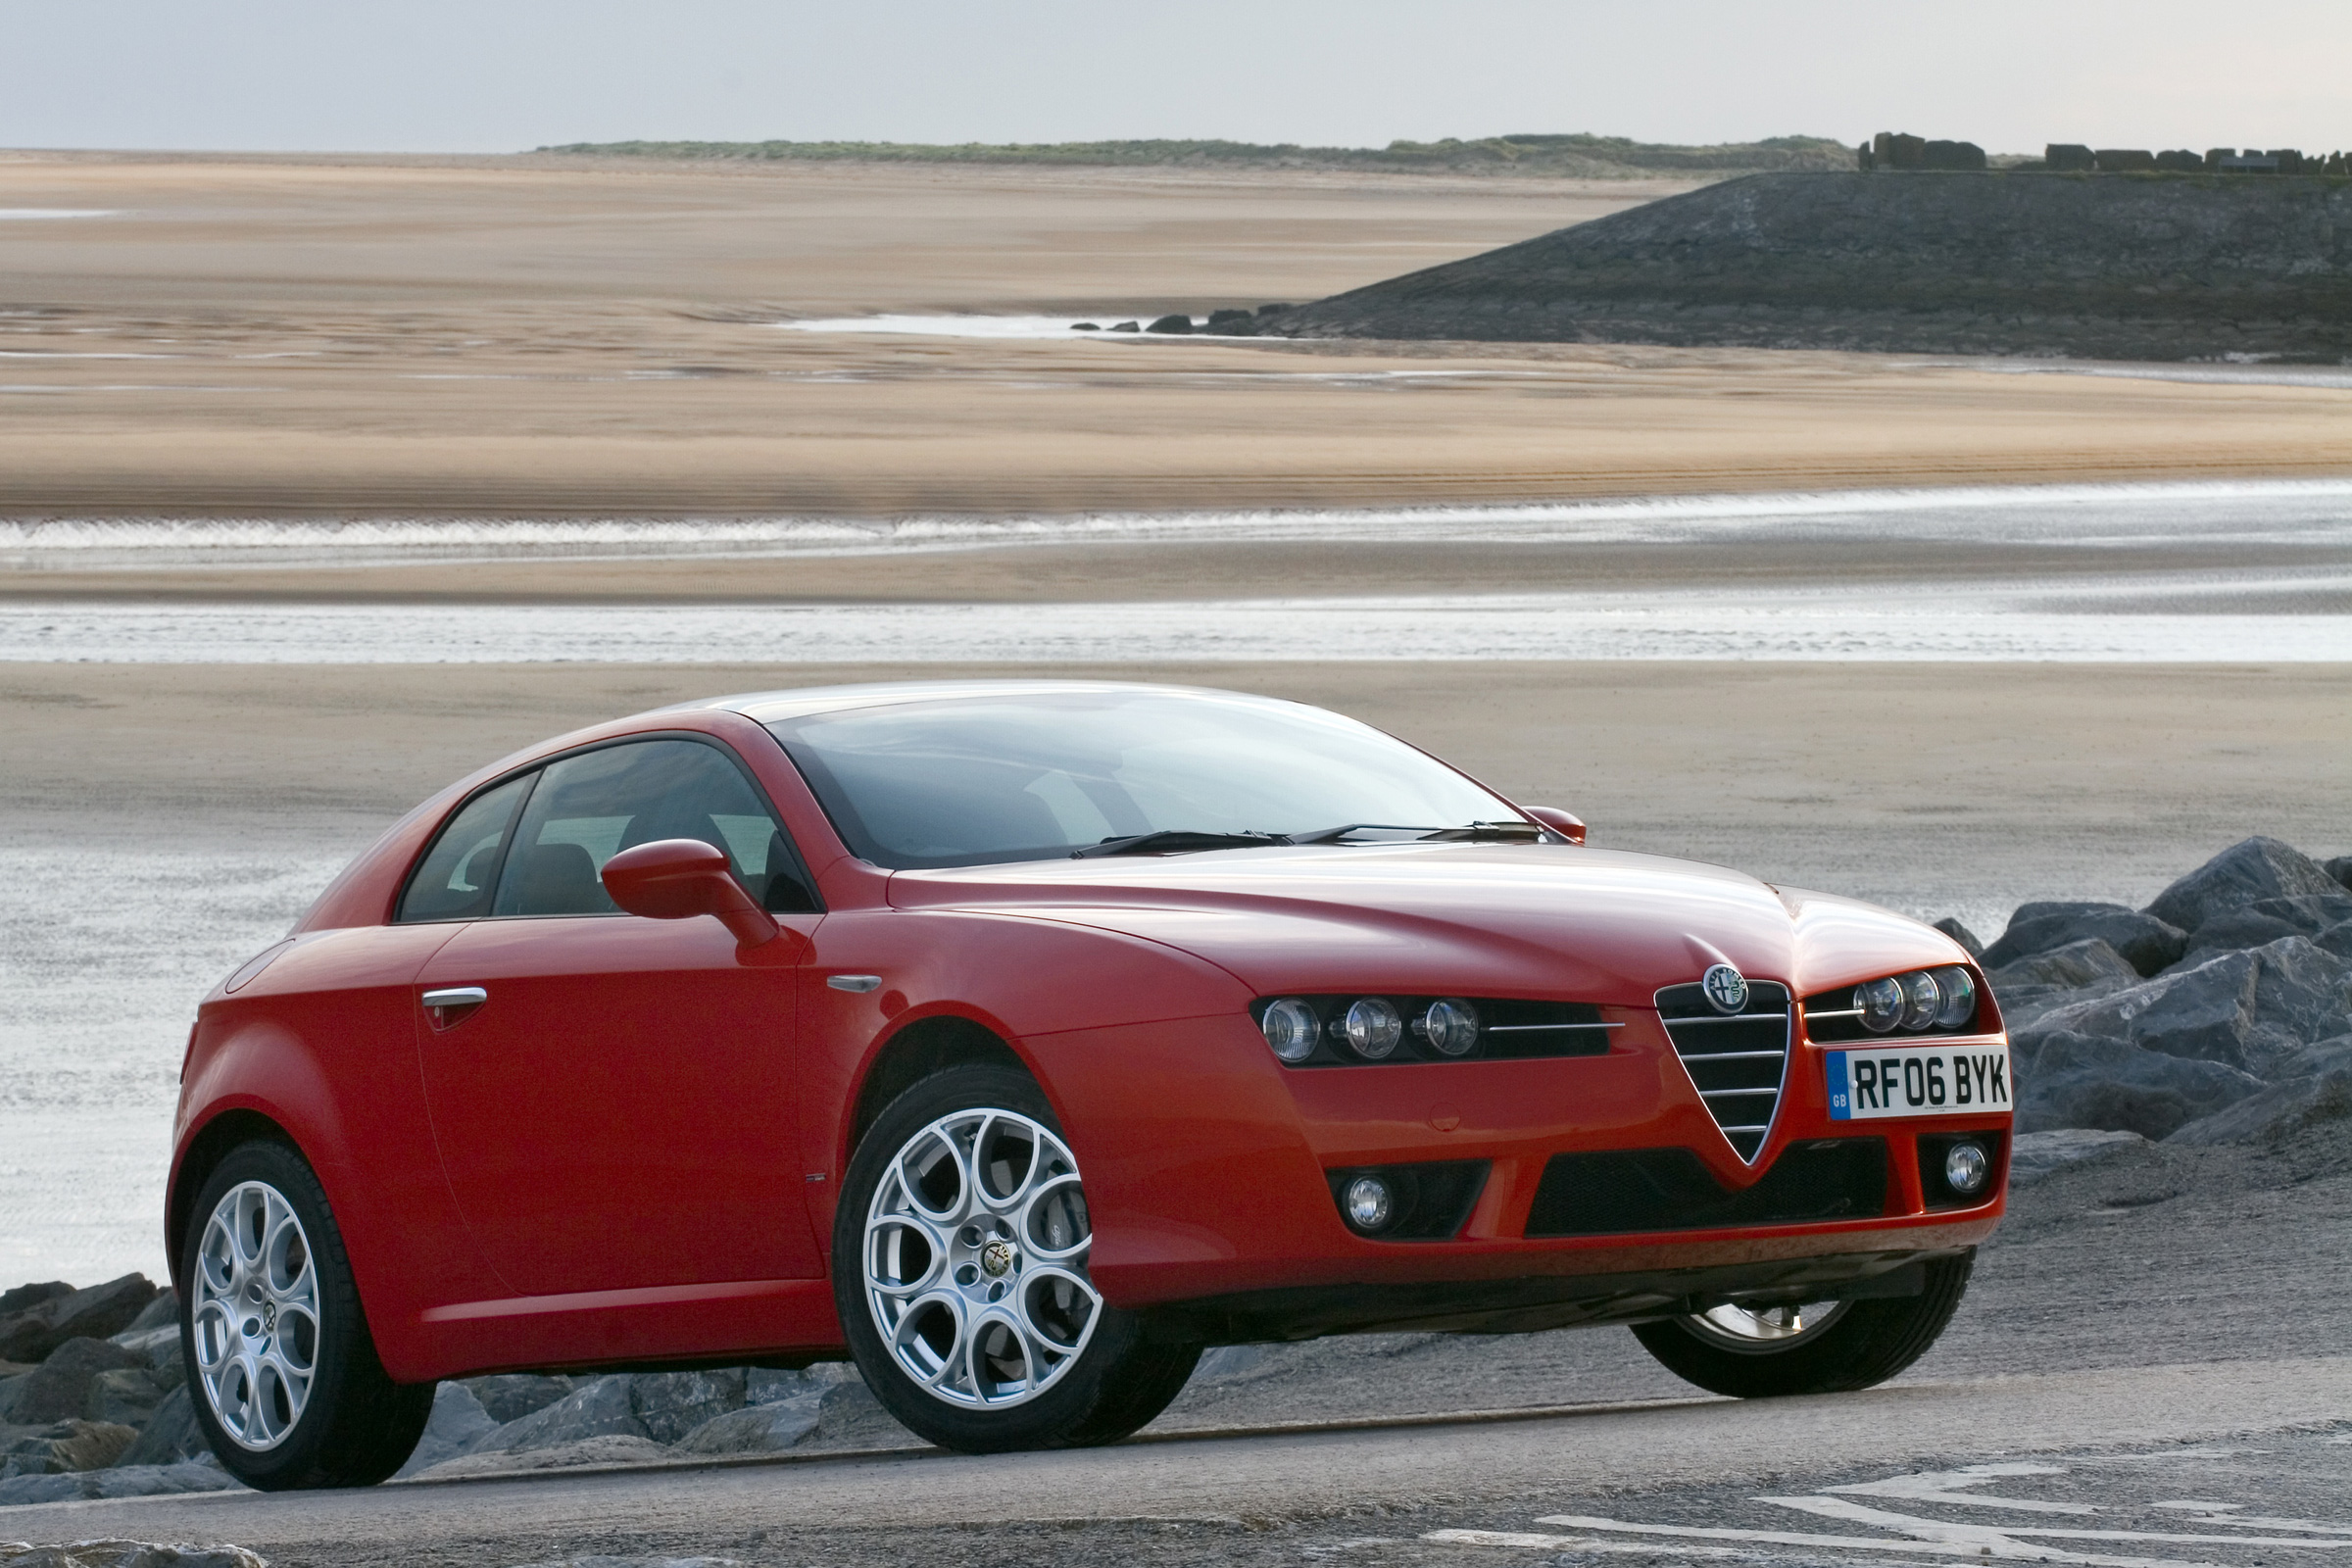 Alfa Romeo Brera 2005 2010 Owner Reviews Mpg Problems Reliability Carbuyer